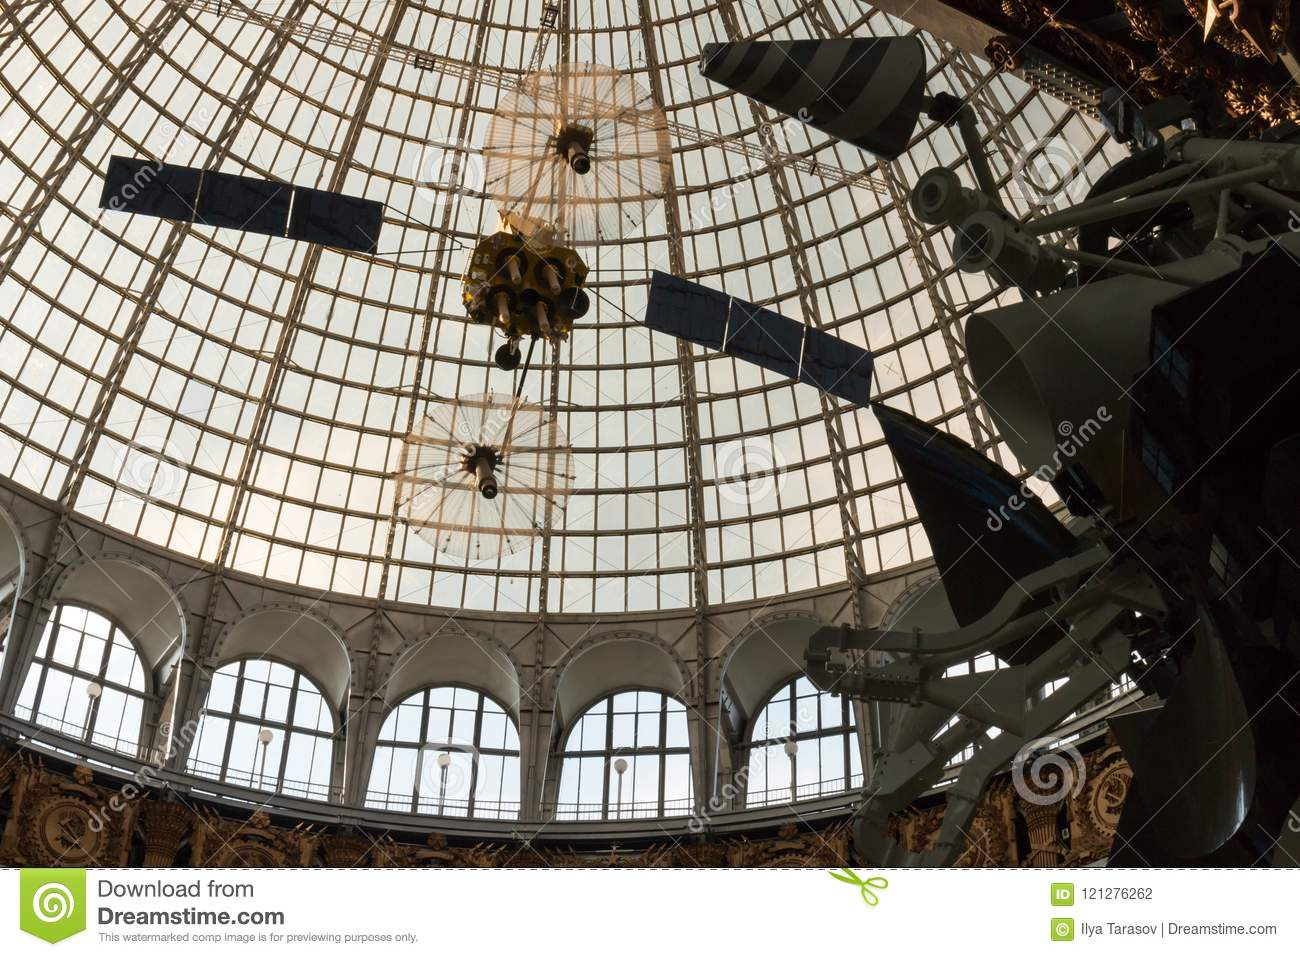 Openwork design of a dome made of glass and metal.